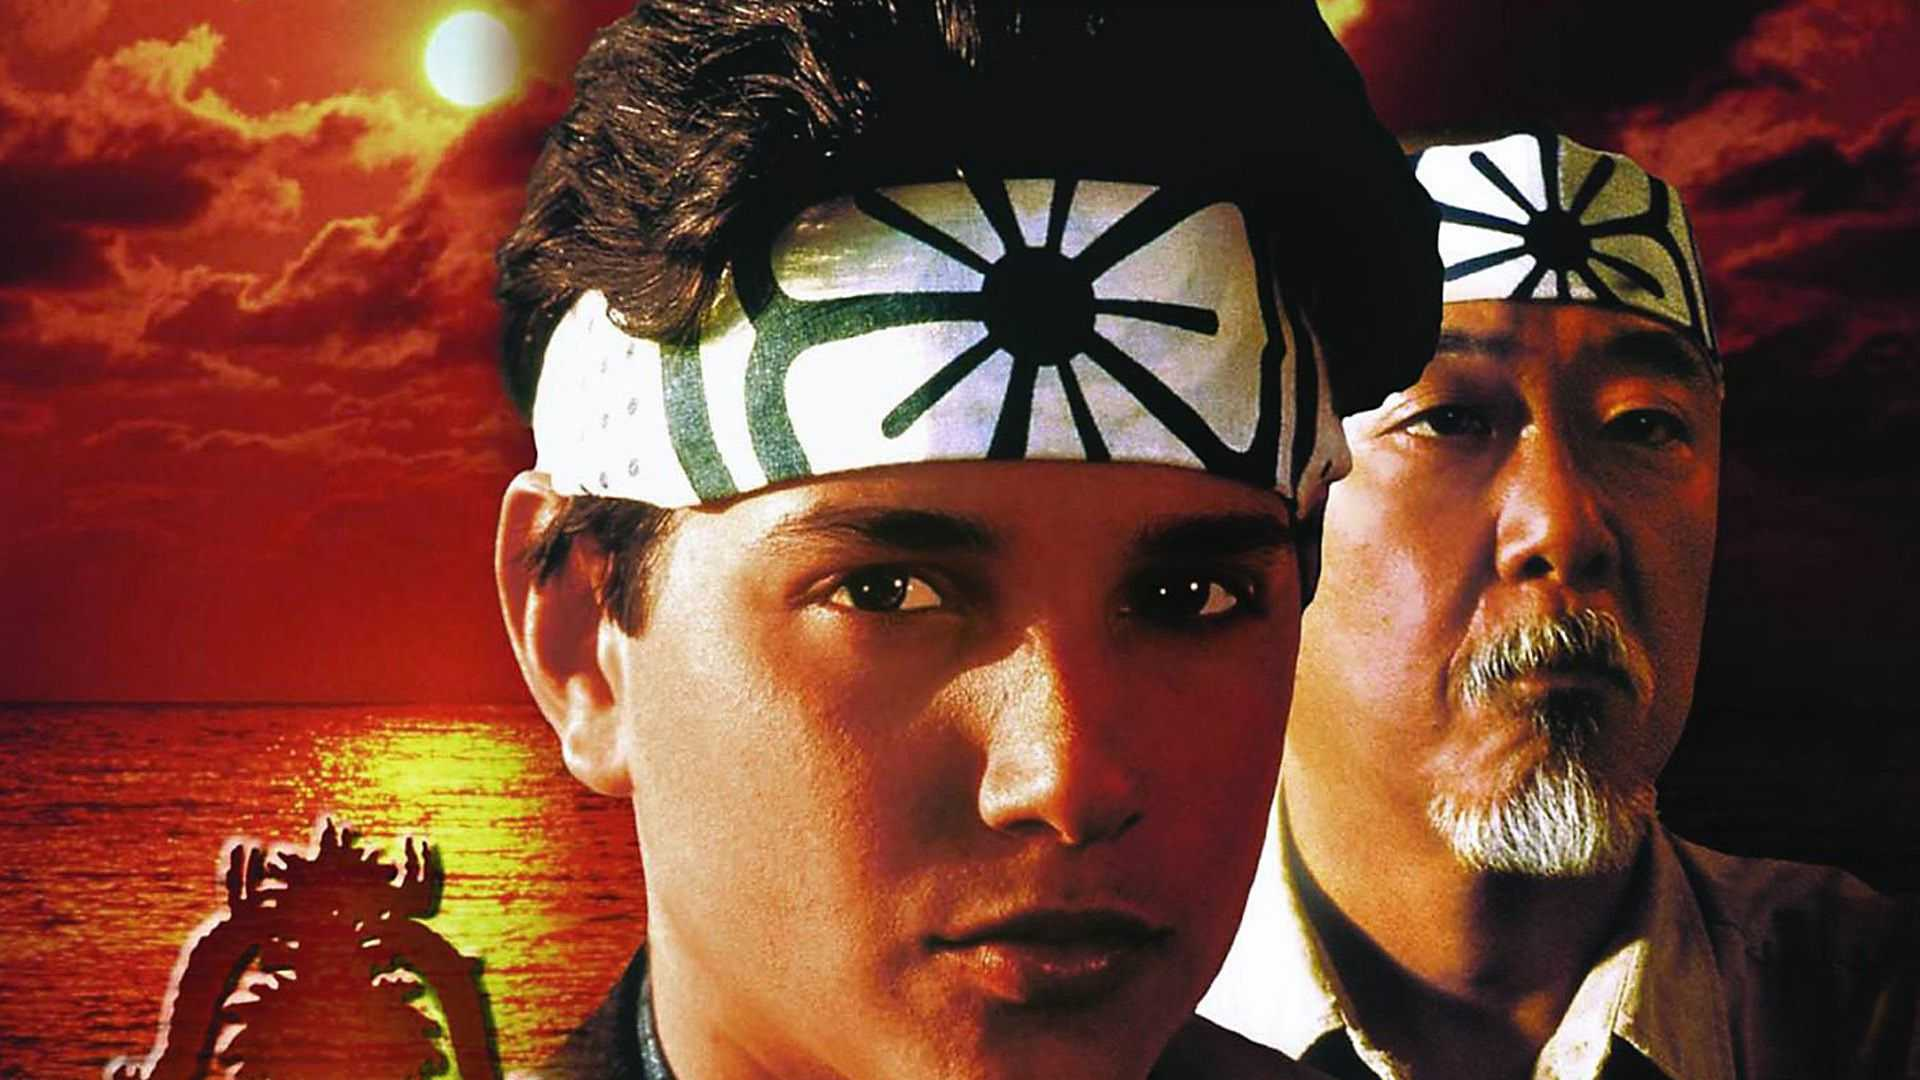 HD Karate Kid Wallpaper 2